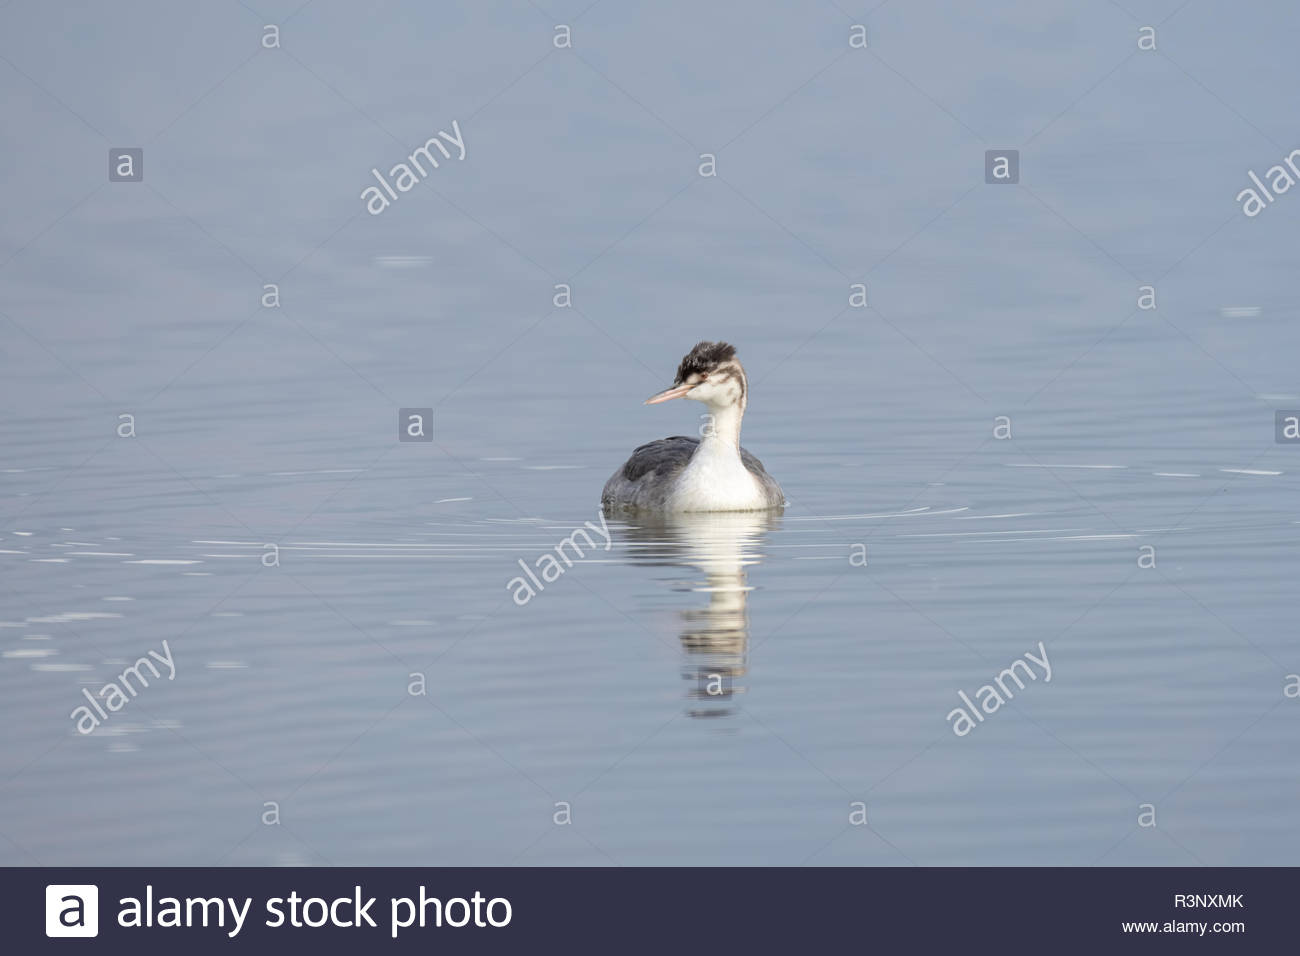 The Great Crested Grebe is a medium to large aquatic bird, and is the largest of the grebes. - Stock Image